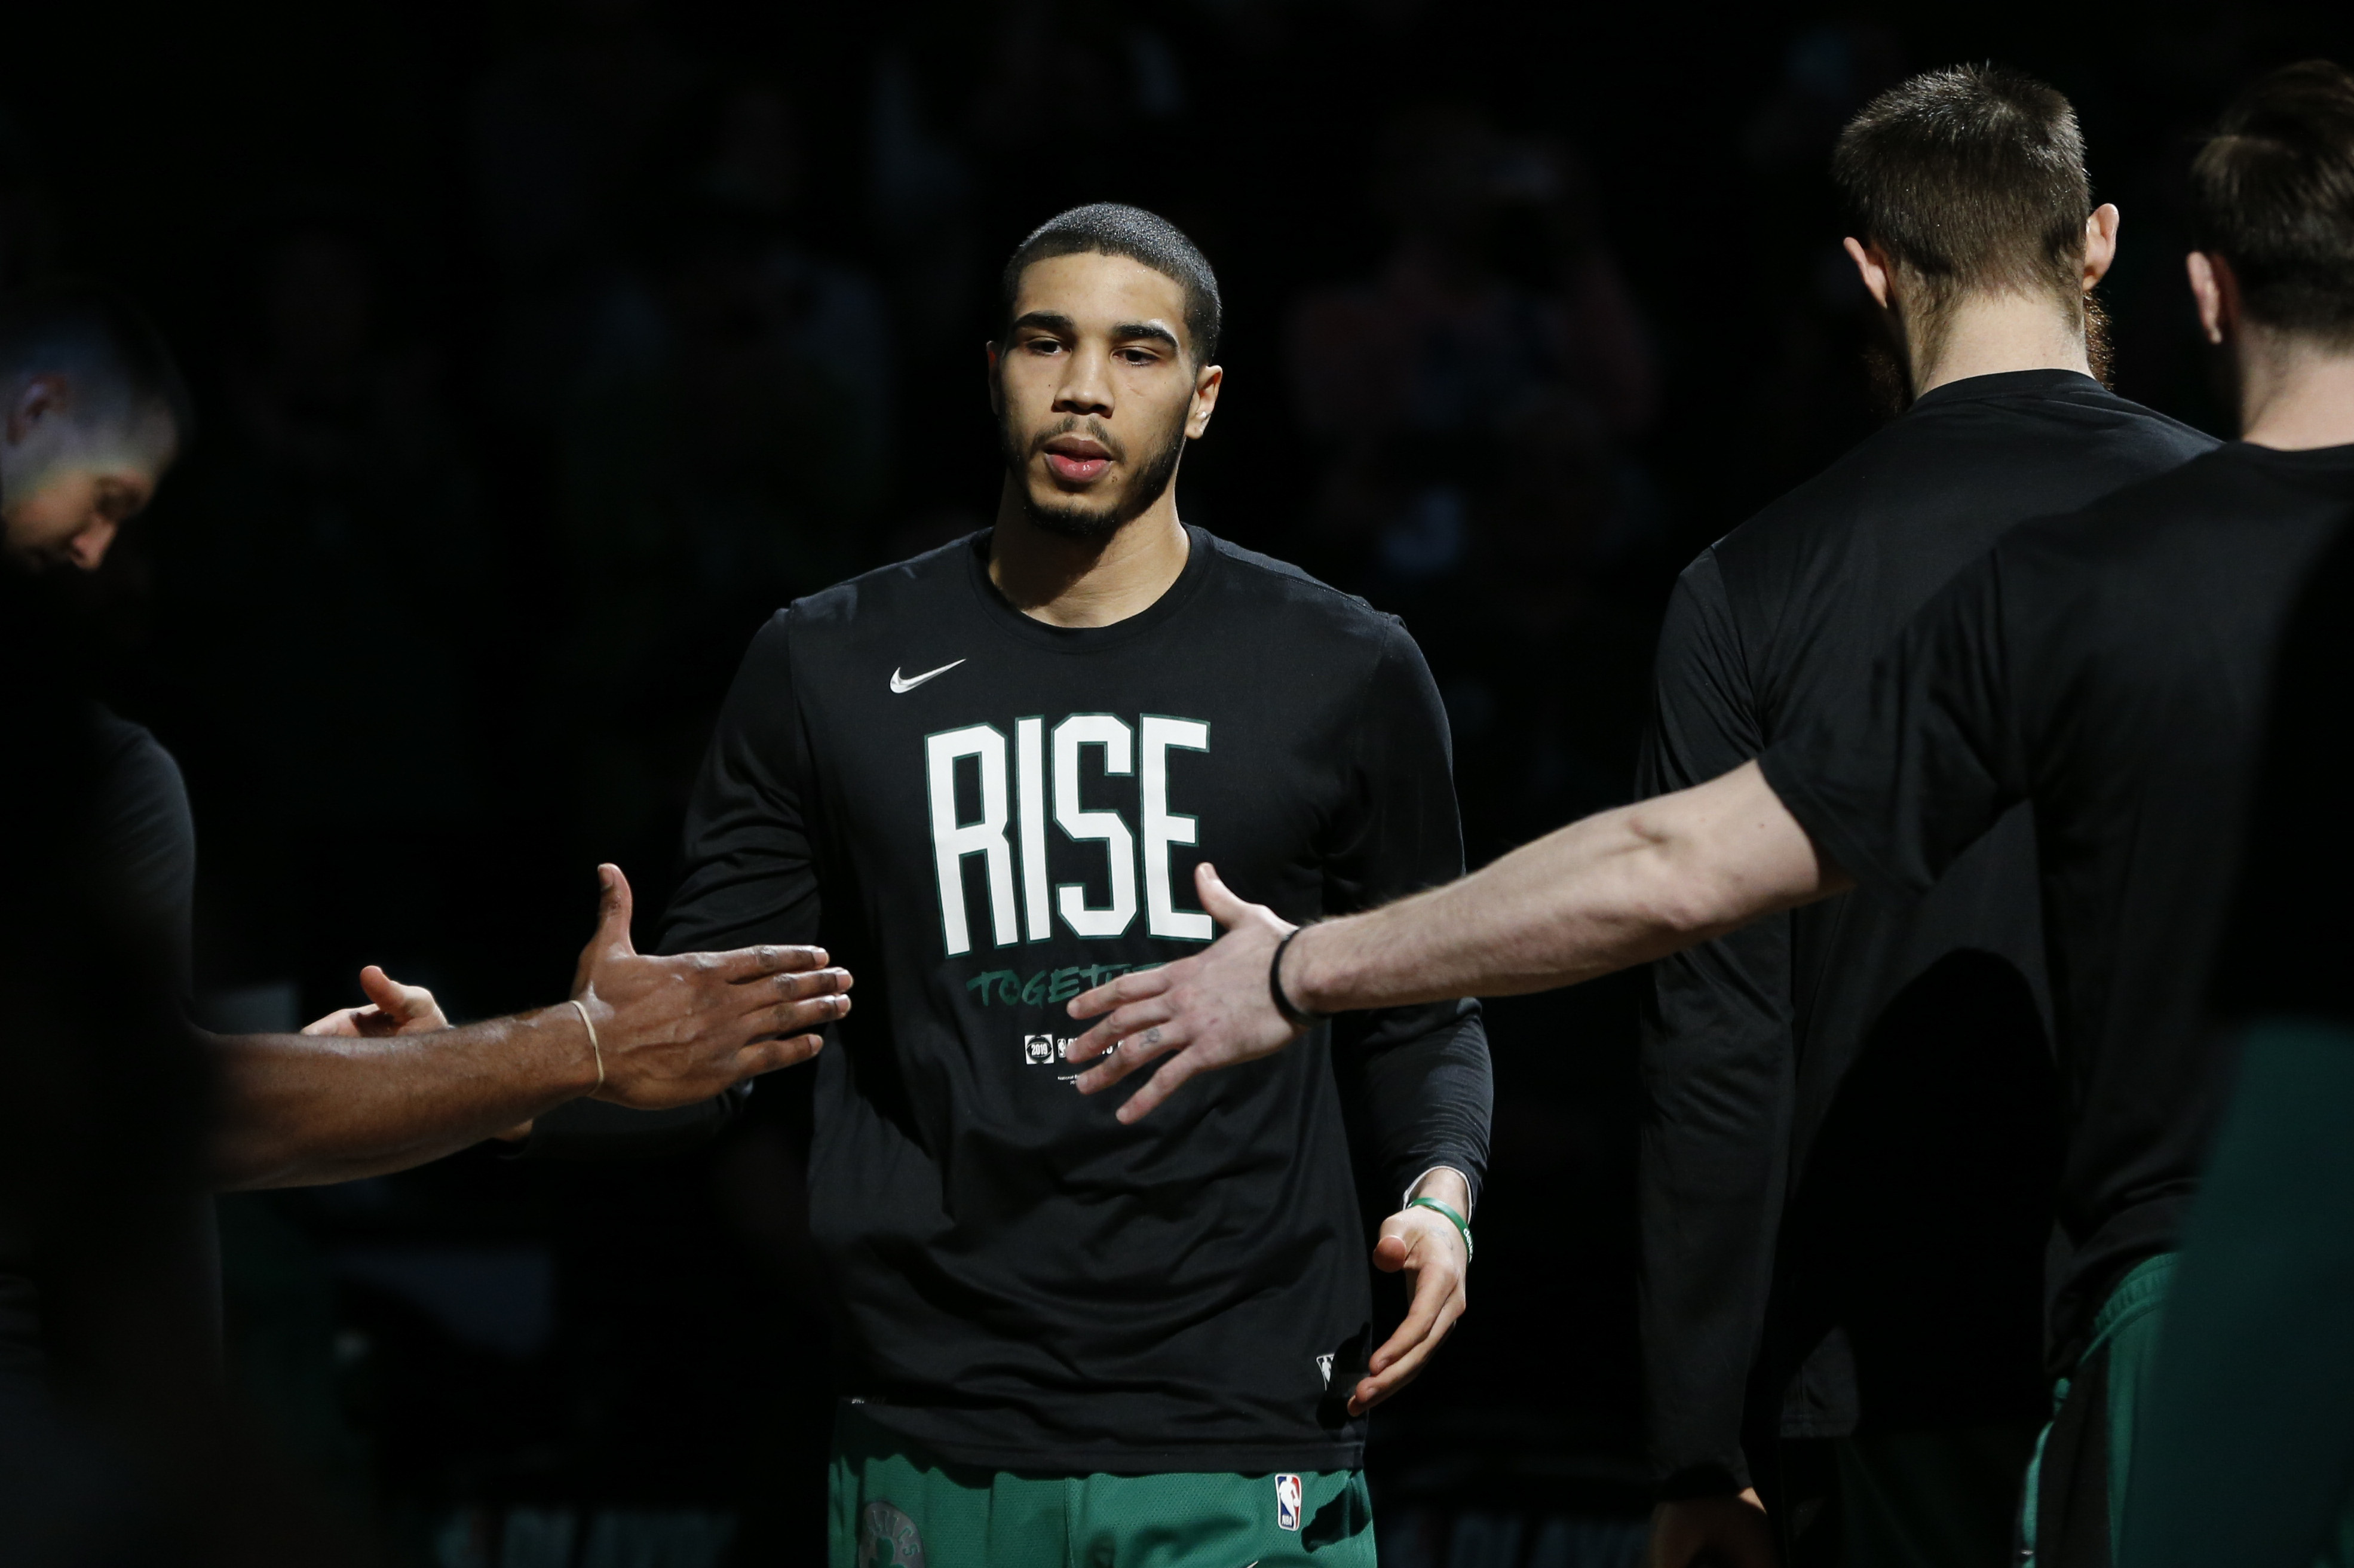 NBA rumors indicate Pelicans covet Jayson Tatum, who could be key to Anthony Davis trade